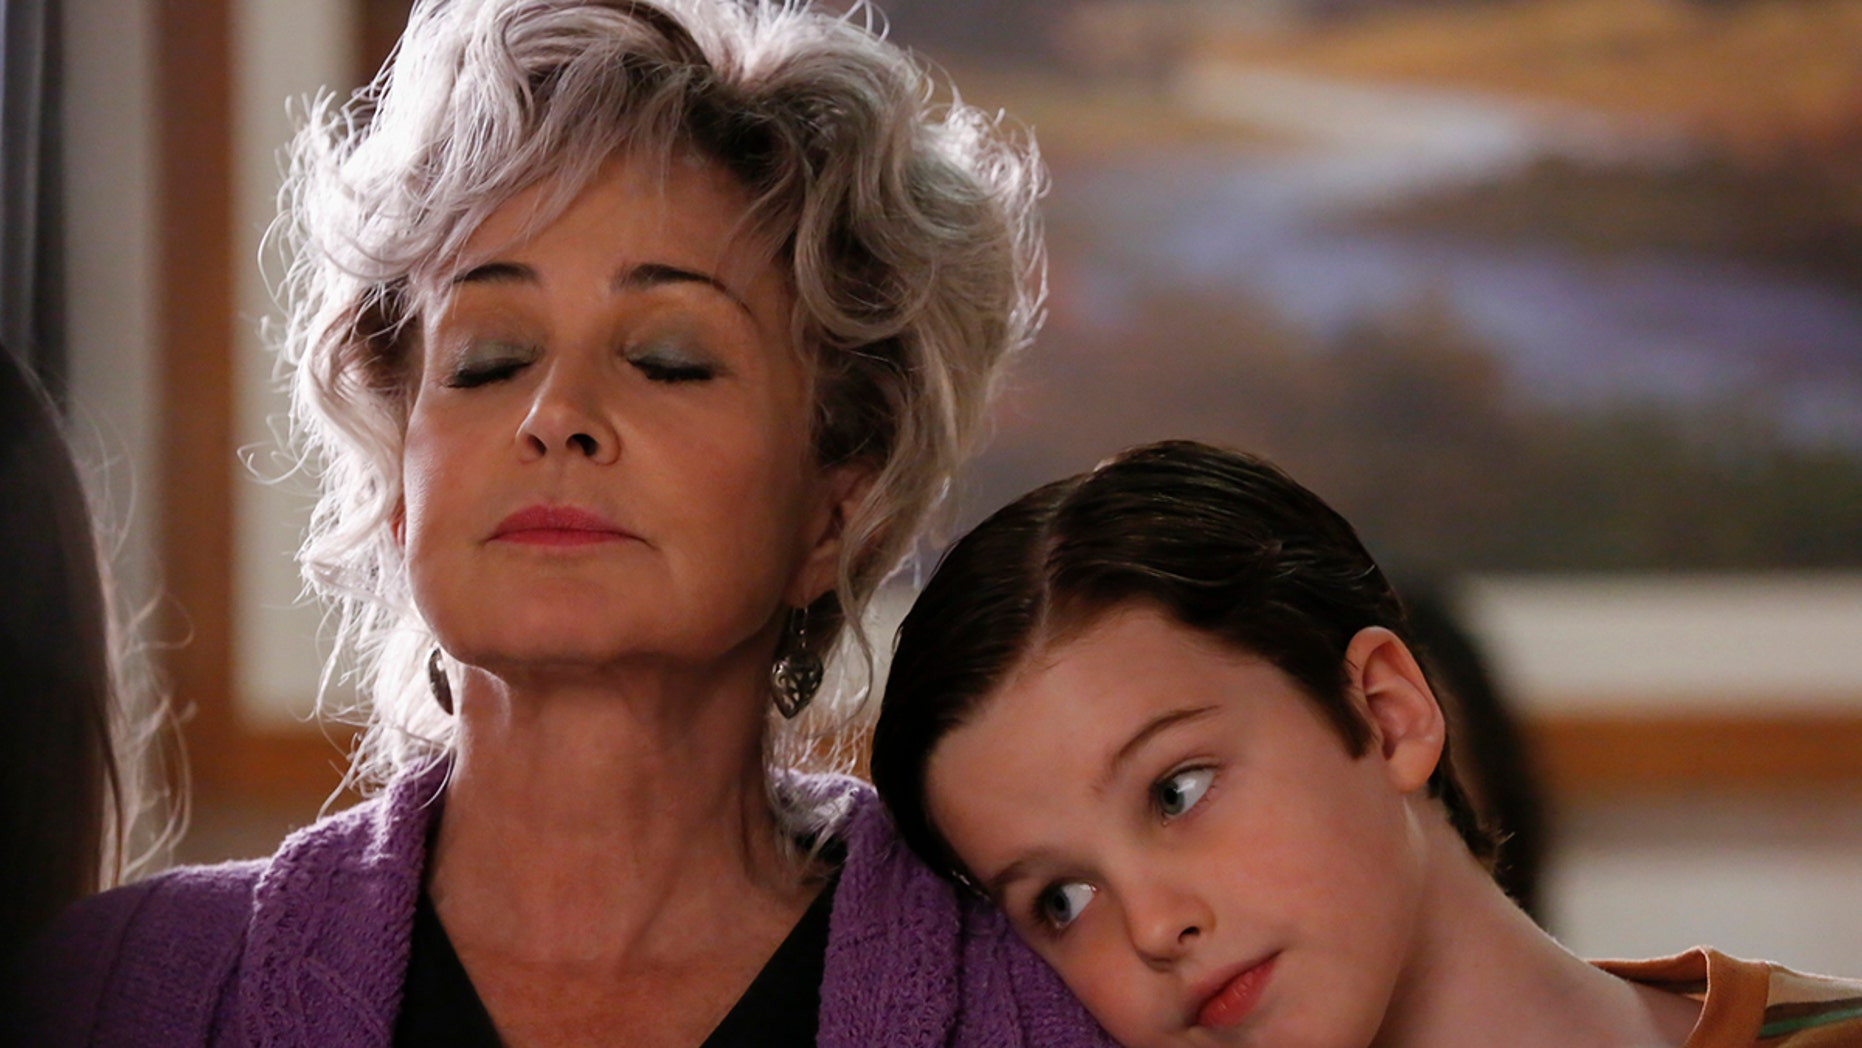 """""""Poker, Faith, and Eggs""""-- Pictured: Meemaw (Annie Potts) and Sheldon (Iain Armitage). When George Sr. is rushed to the emergency room, Meemaw (Annie Potts) comes to babysit, and the kids have an adventure getting to the hospital on their own, when YOUNG SHELDON airs, Thursday Nov. 9 (8:31-9:01 PM, ET/PT) on the CBS Television Network. Photo: Robert Voets/Warner Bros. Entertainment Inc. © 2017 WBEI. All rights reserved."""